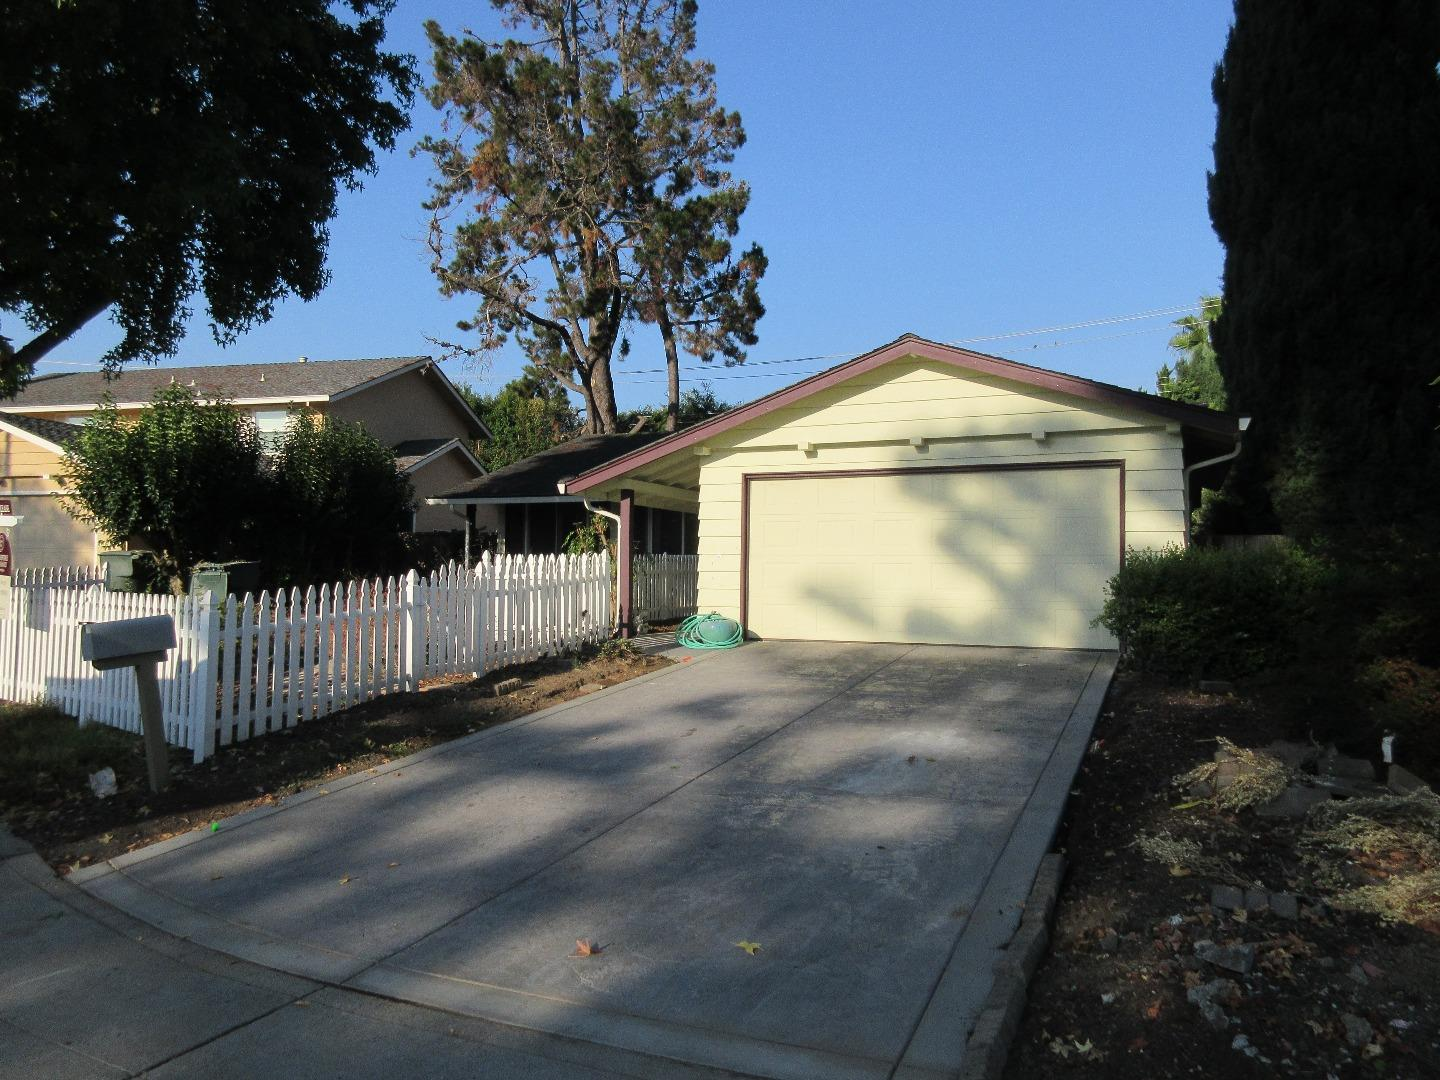 Single Family Home for Rent at 1039 Rubis Drive Sunnyvale, California 94087 United States